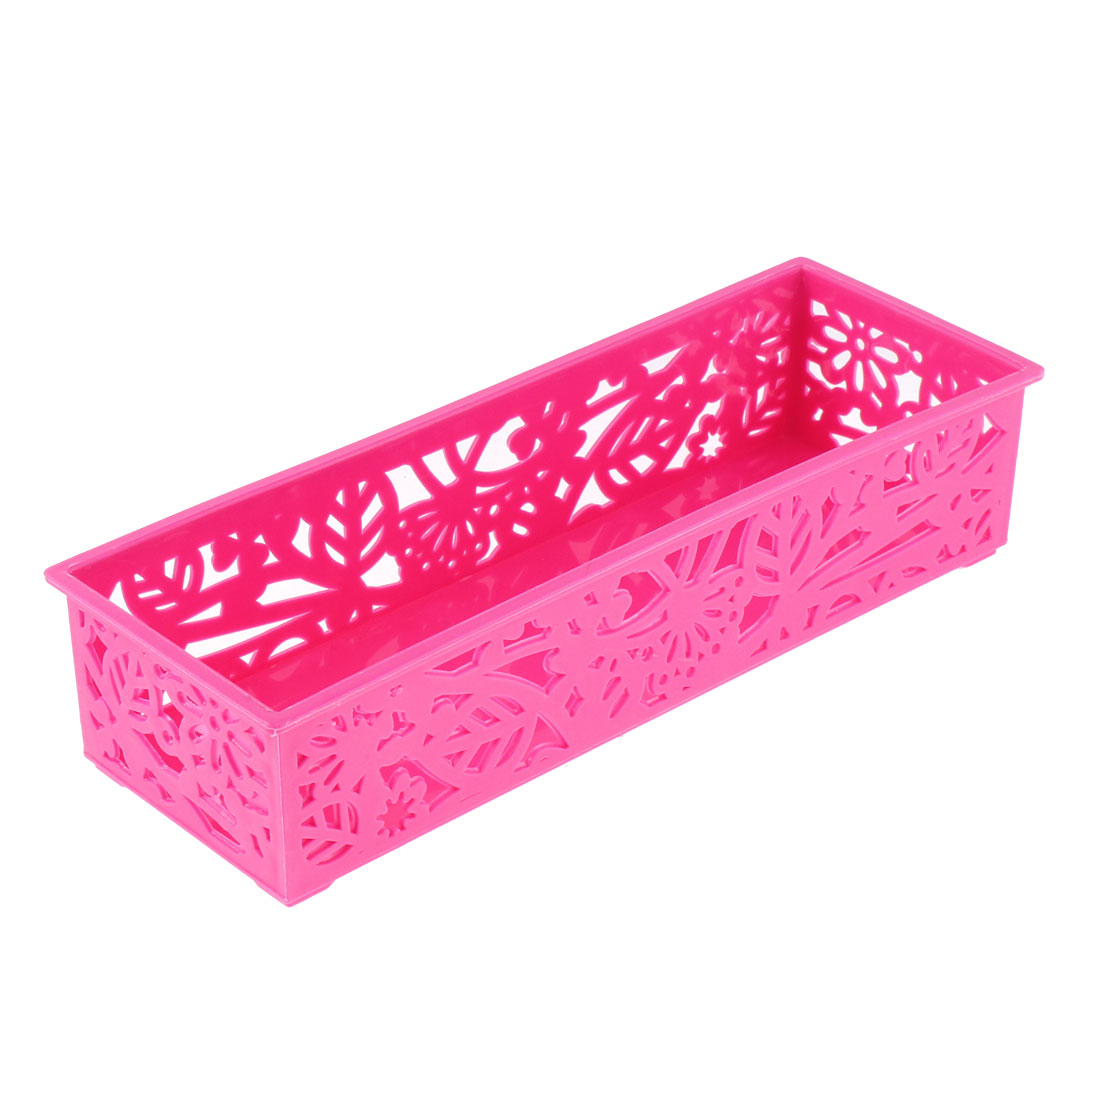 Unique BargainsHousehold Plastic Hollow Out Flower Design Storage Basket 245mmx85mm Fuchsia